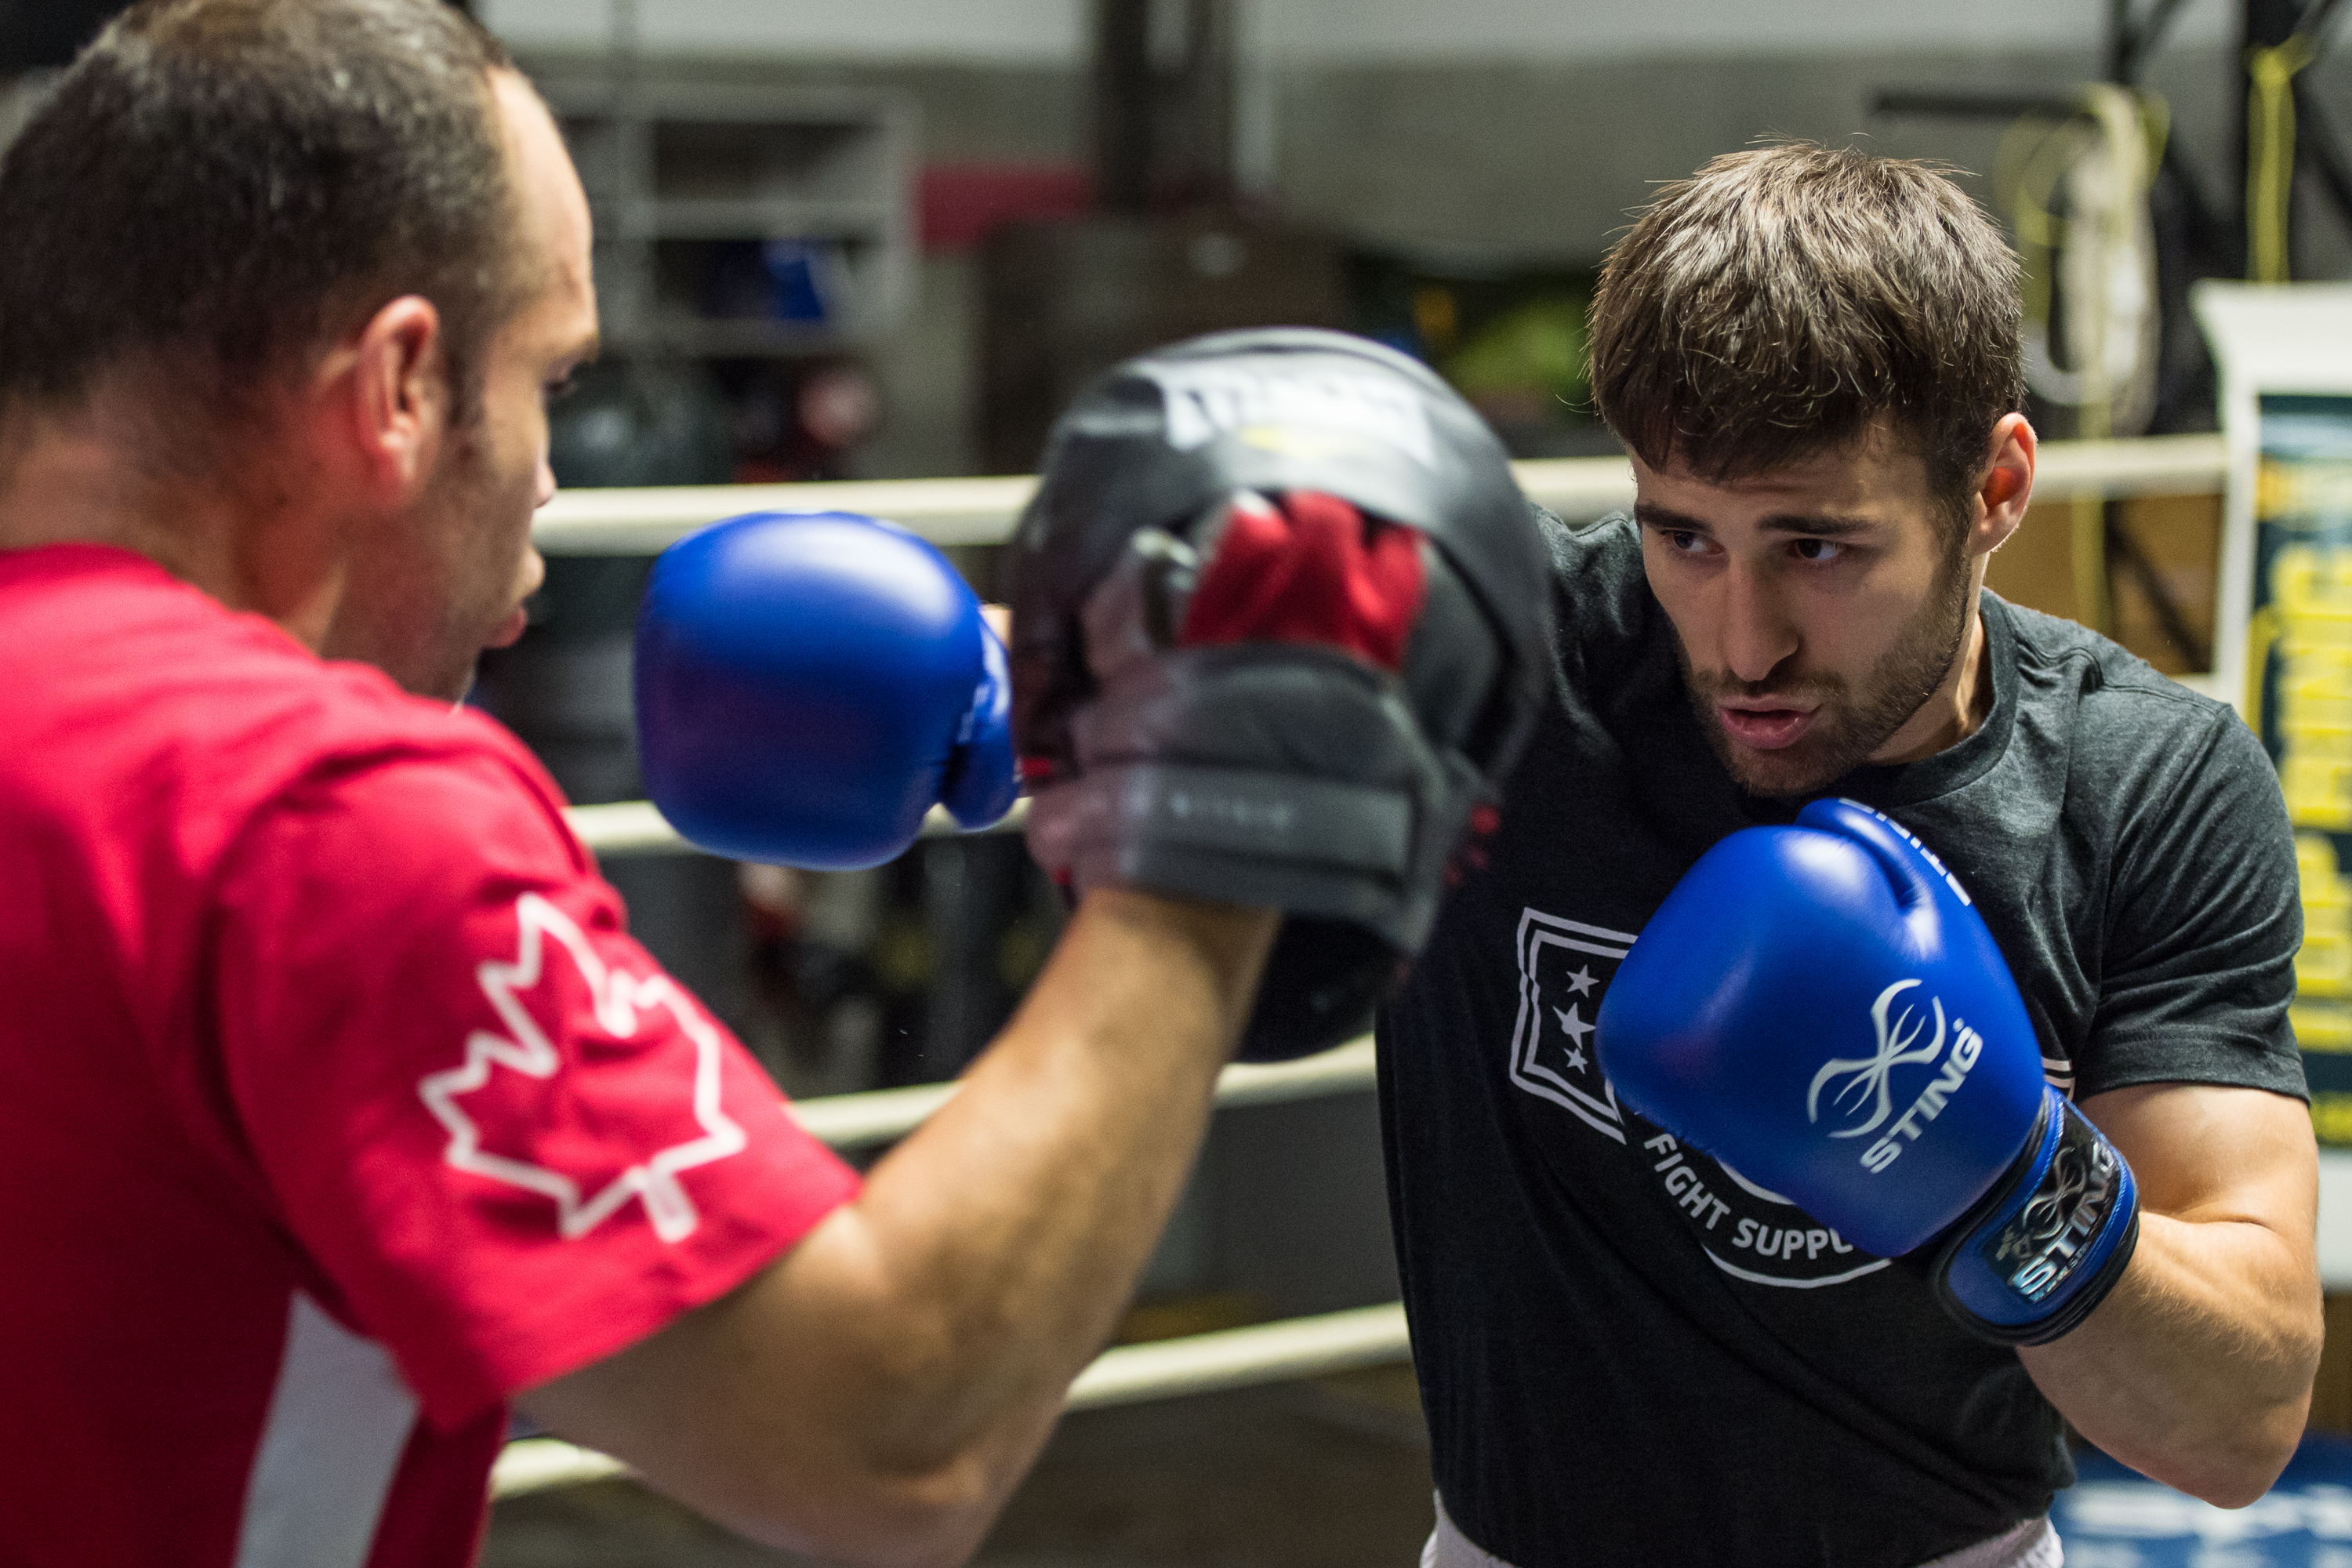 MONTREAL, QC - JULY 14: Arthur Biyarslanov and Ariane Fortin are nominated to the Canadian Olympic Team at Club de Boxe de l'Est on July 14, 2016 in Montreal, Quebec, Canada. (Photo by Minas Panagiotakis/Photography 514-COC)